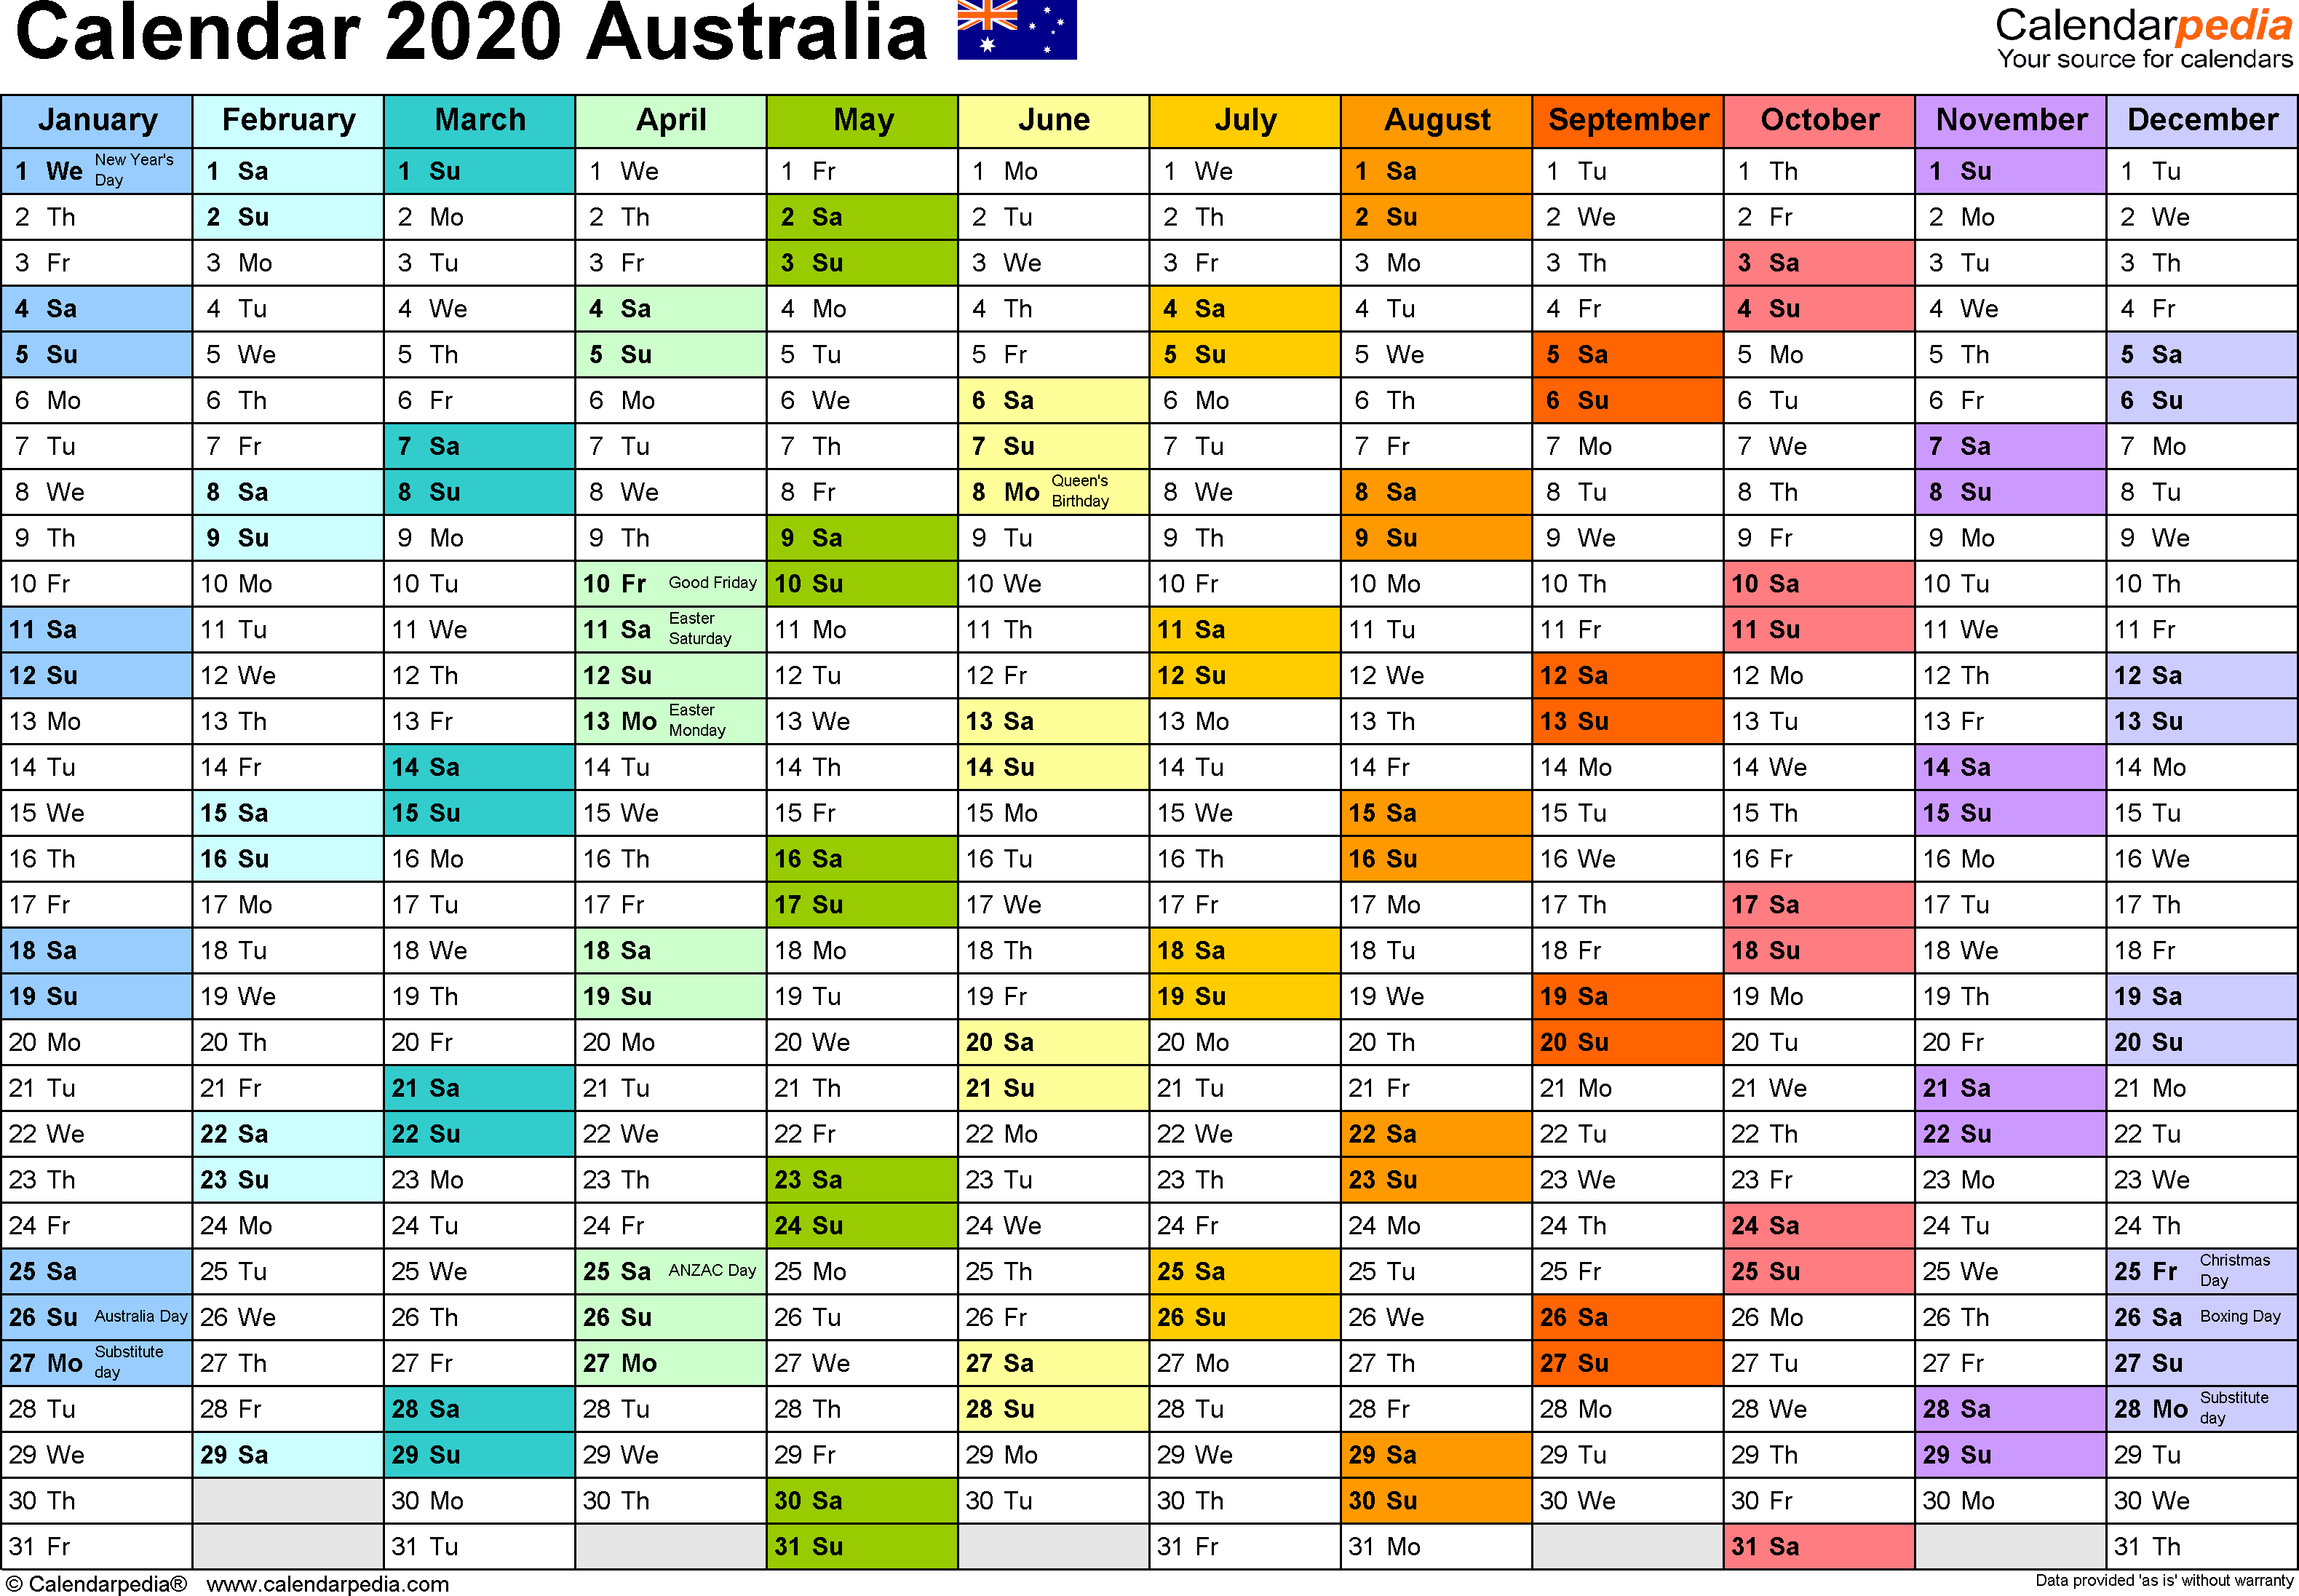 Australia Calendar 2020 - Free Printable Pdf Templates throughout Free Printable 2020 Monday To Friday Australian Calender